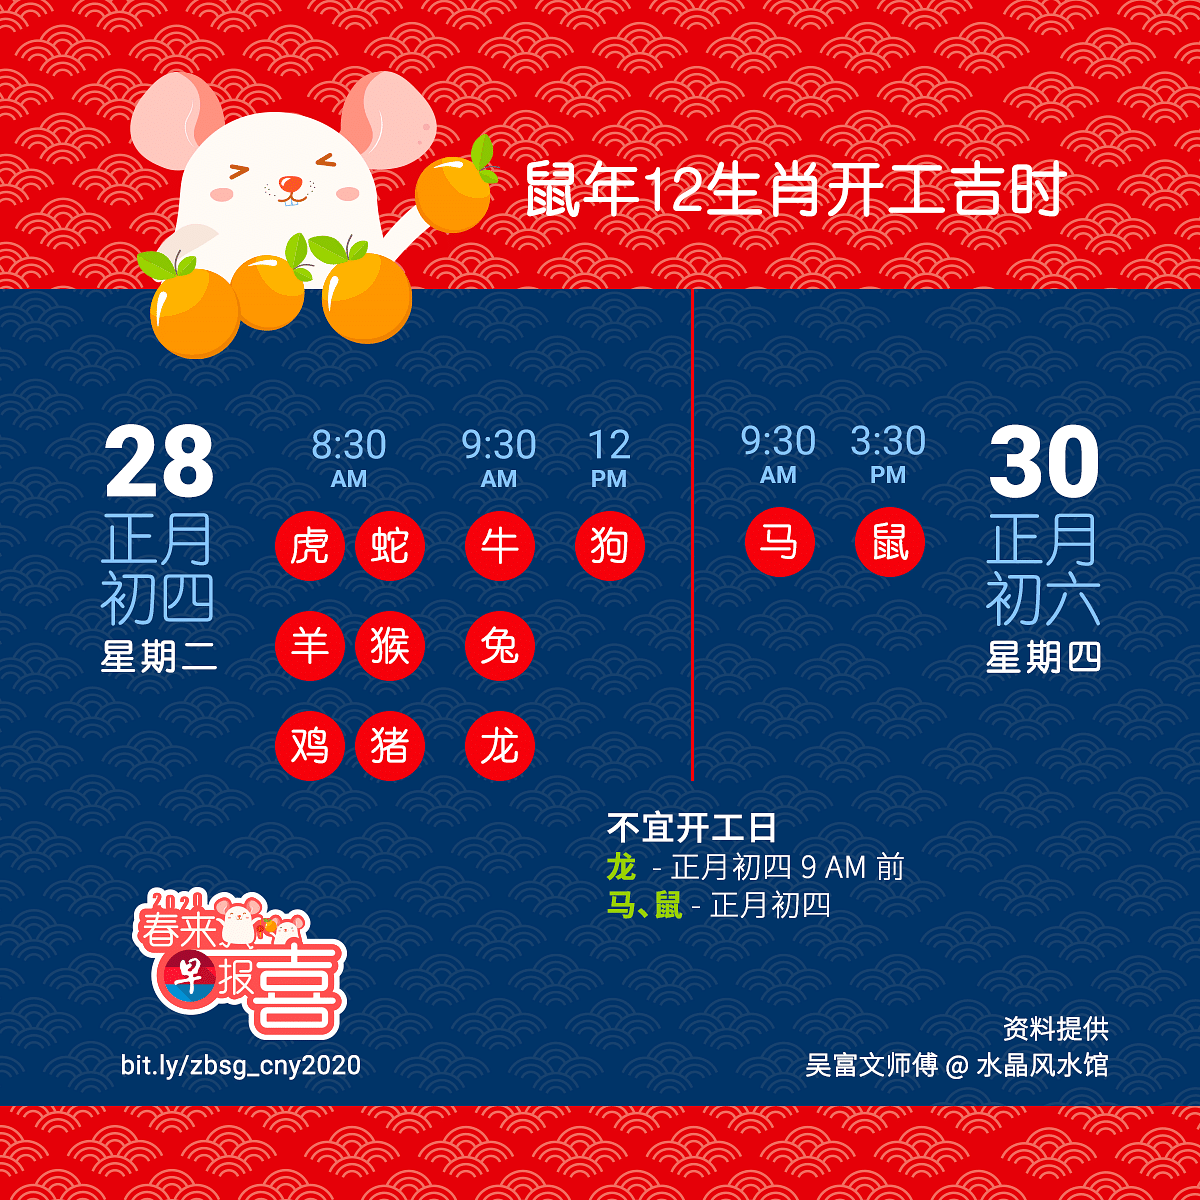 Best Date and Time to start work during Chinese New Year According to Zodiac Sign